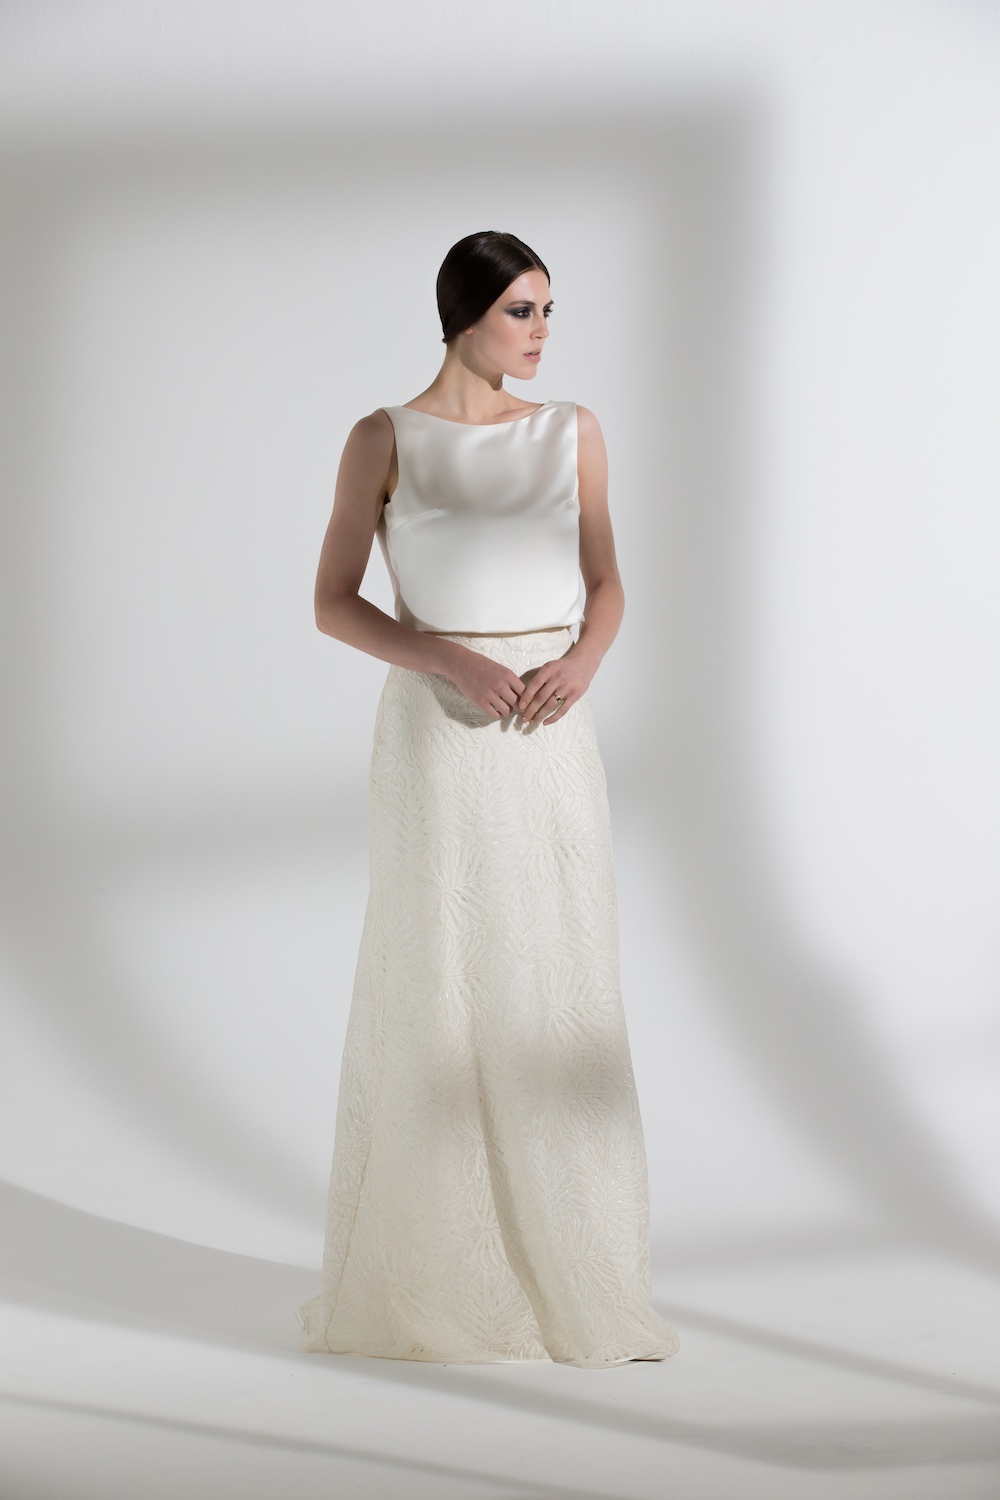 PALMA SKIRT & RAFE TOP | WEDDING DRESS BY HALFPENNY LONDON